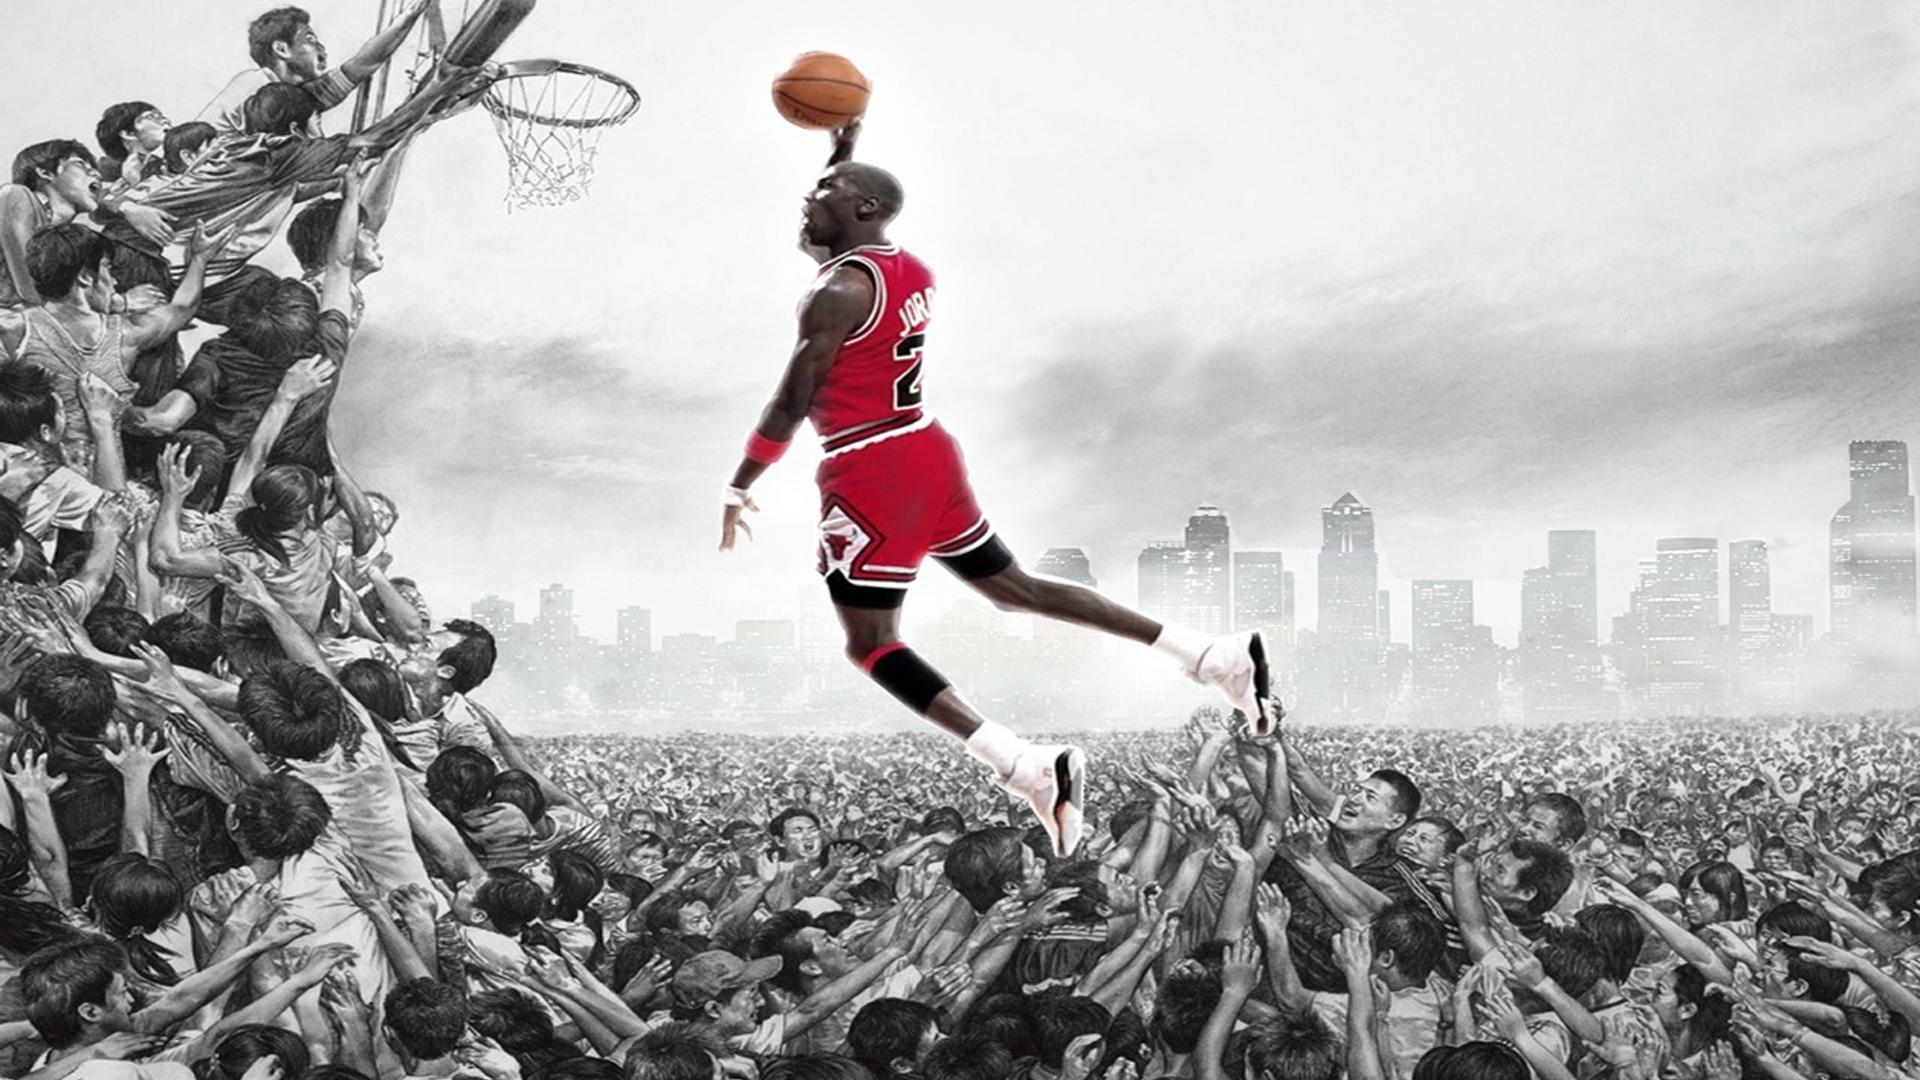 Michael Jordan Dunk HD Desktop Wallpaper HD Desktop Wallpaper 1920x1080